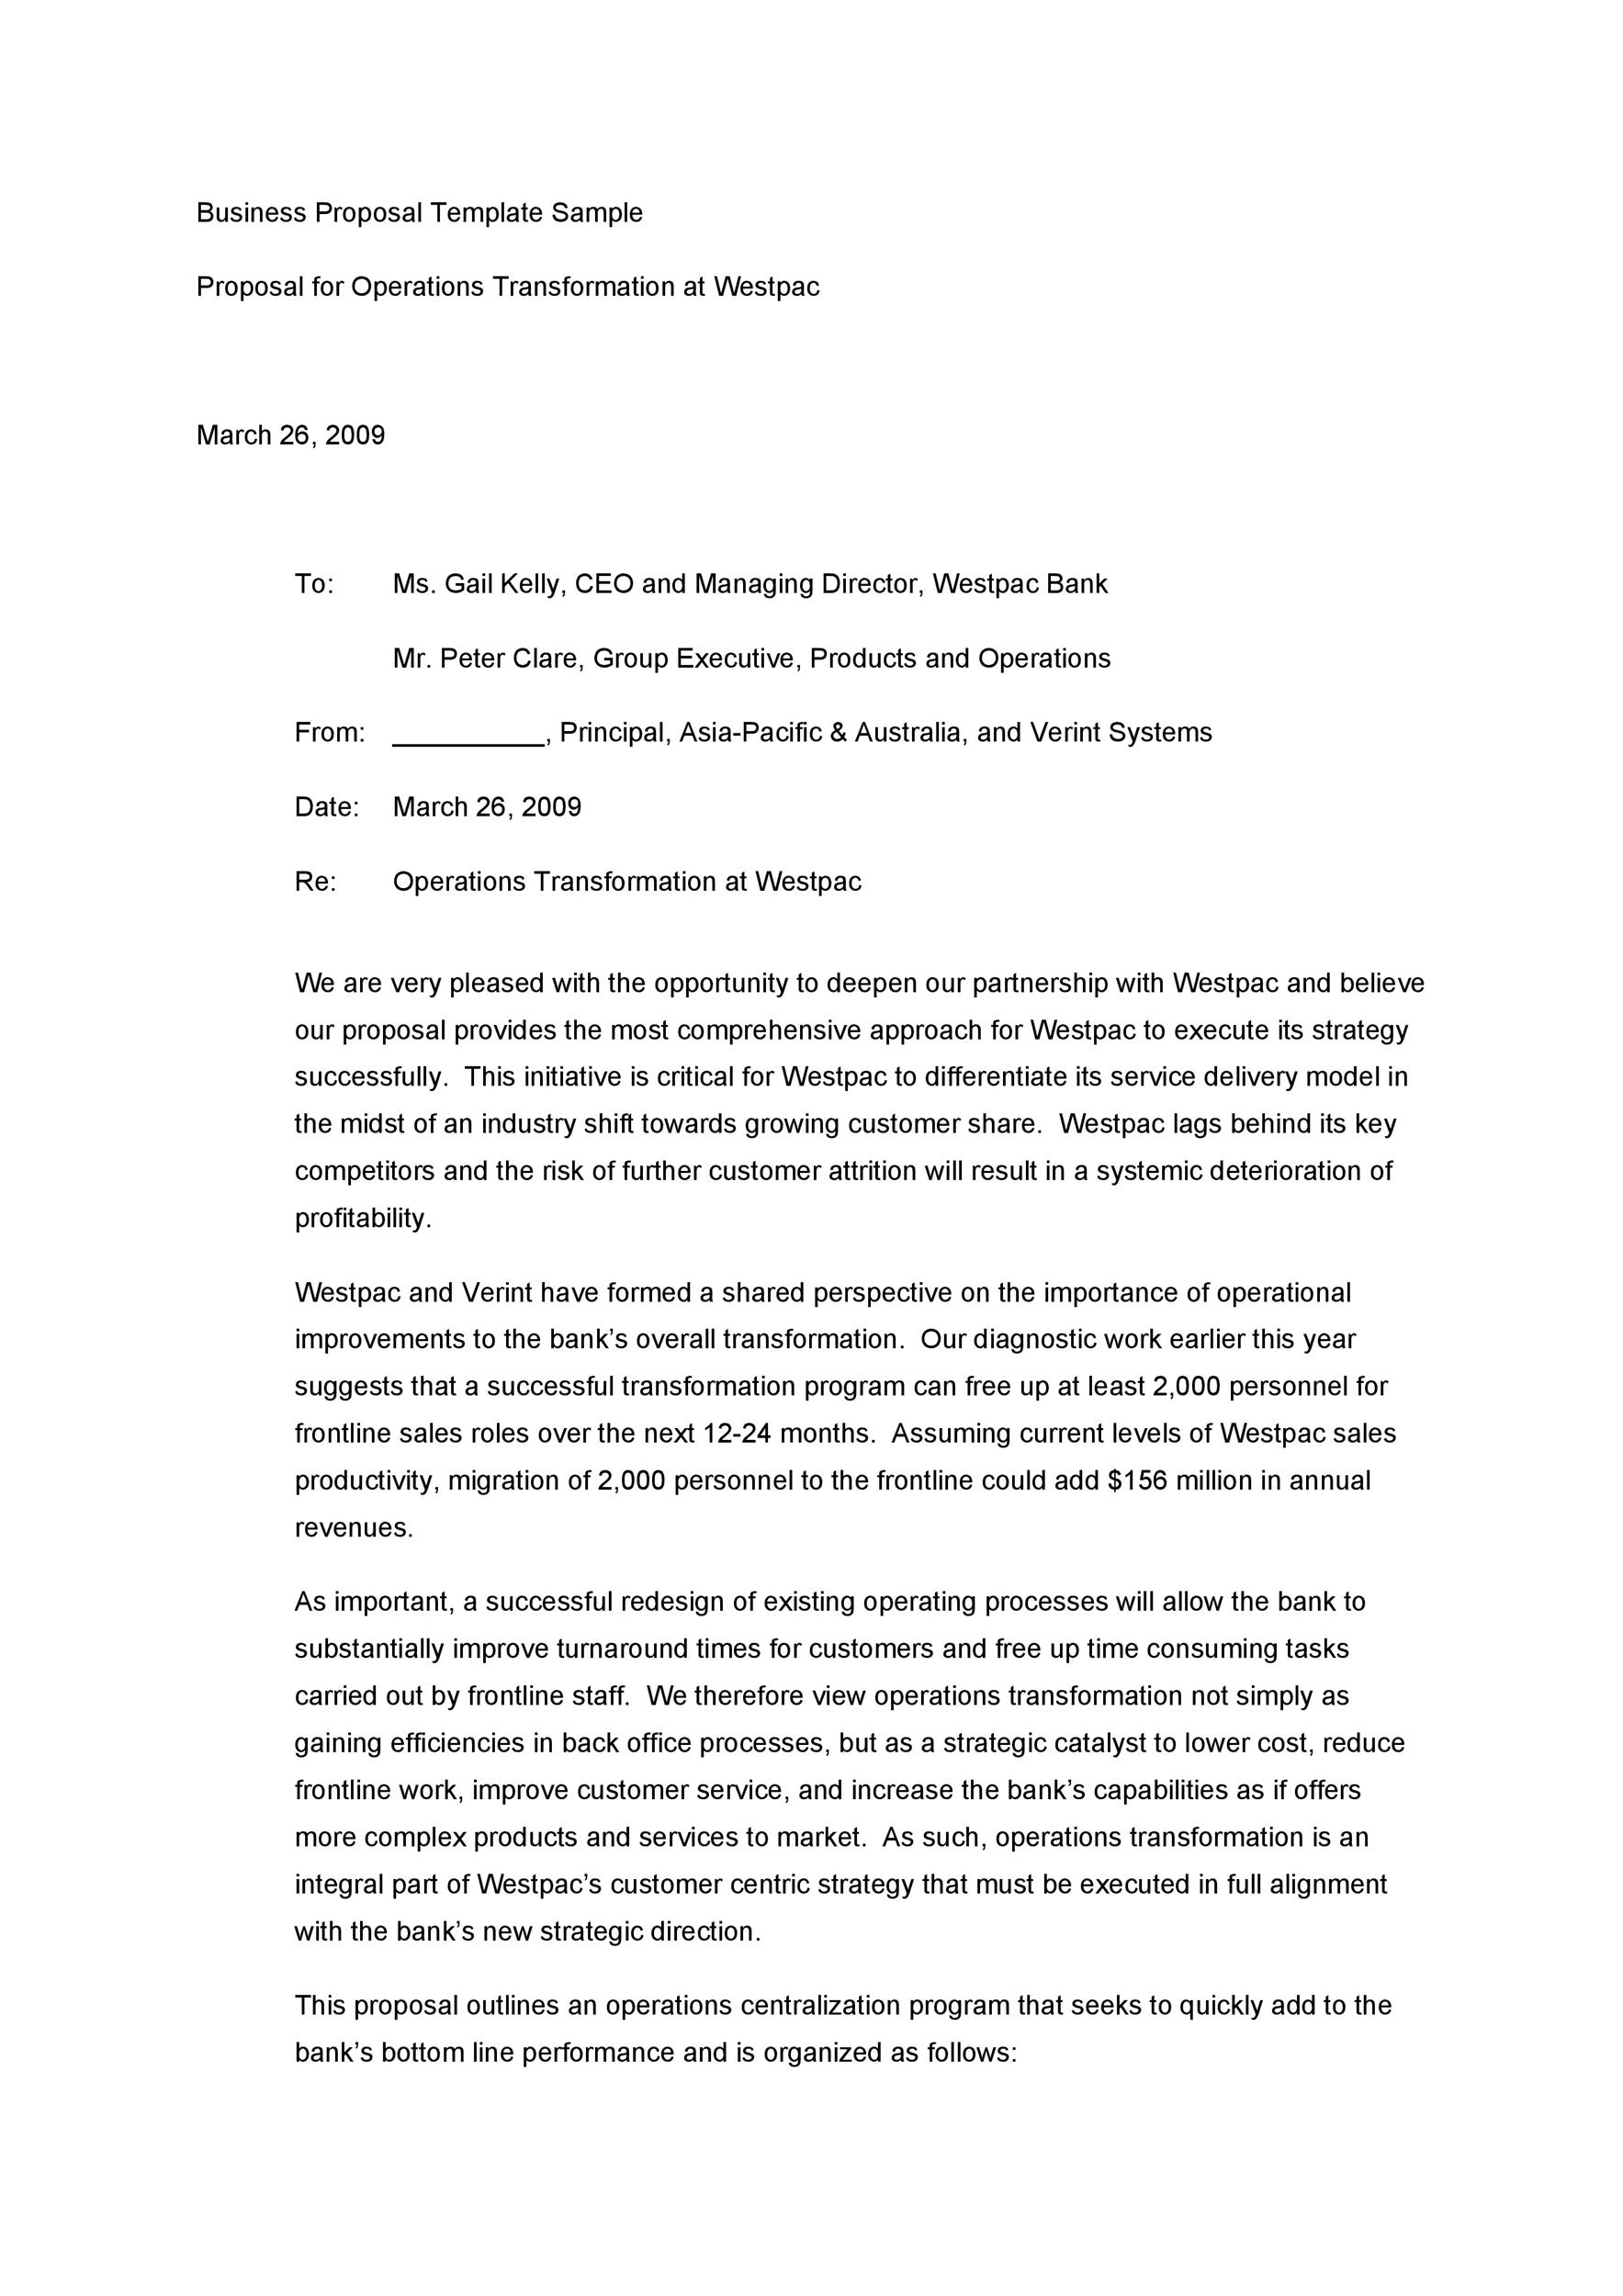 Business Proposal Examples  A Business Proposal Letter